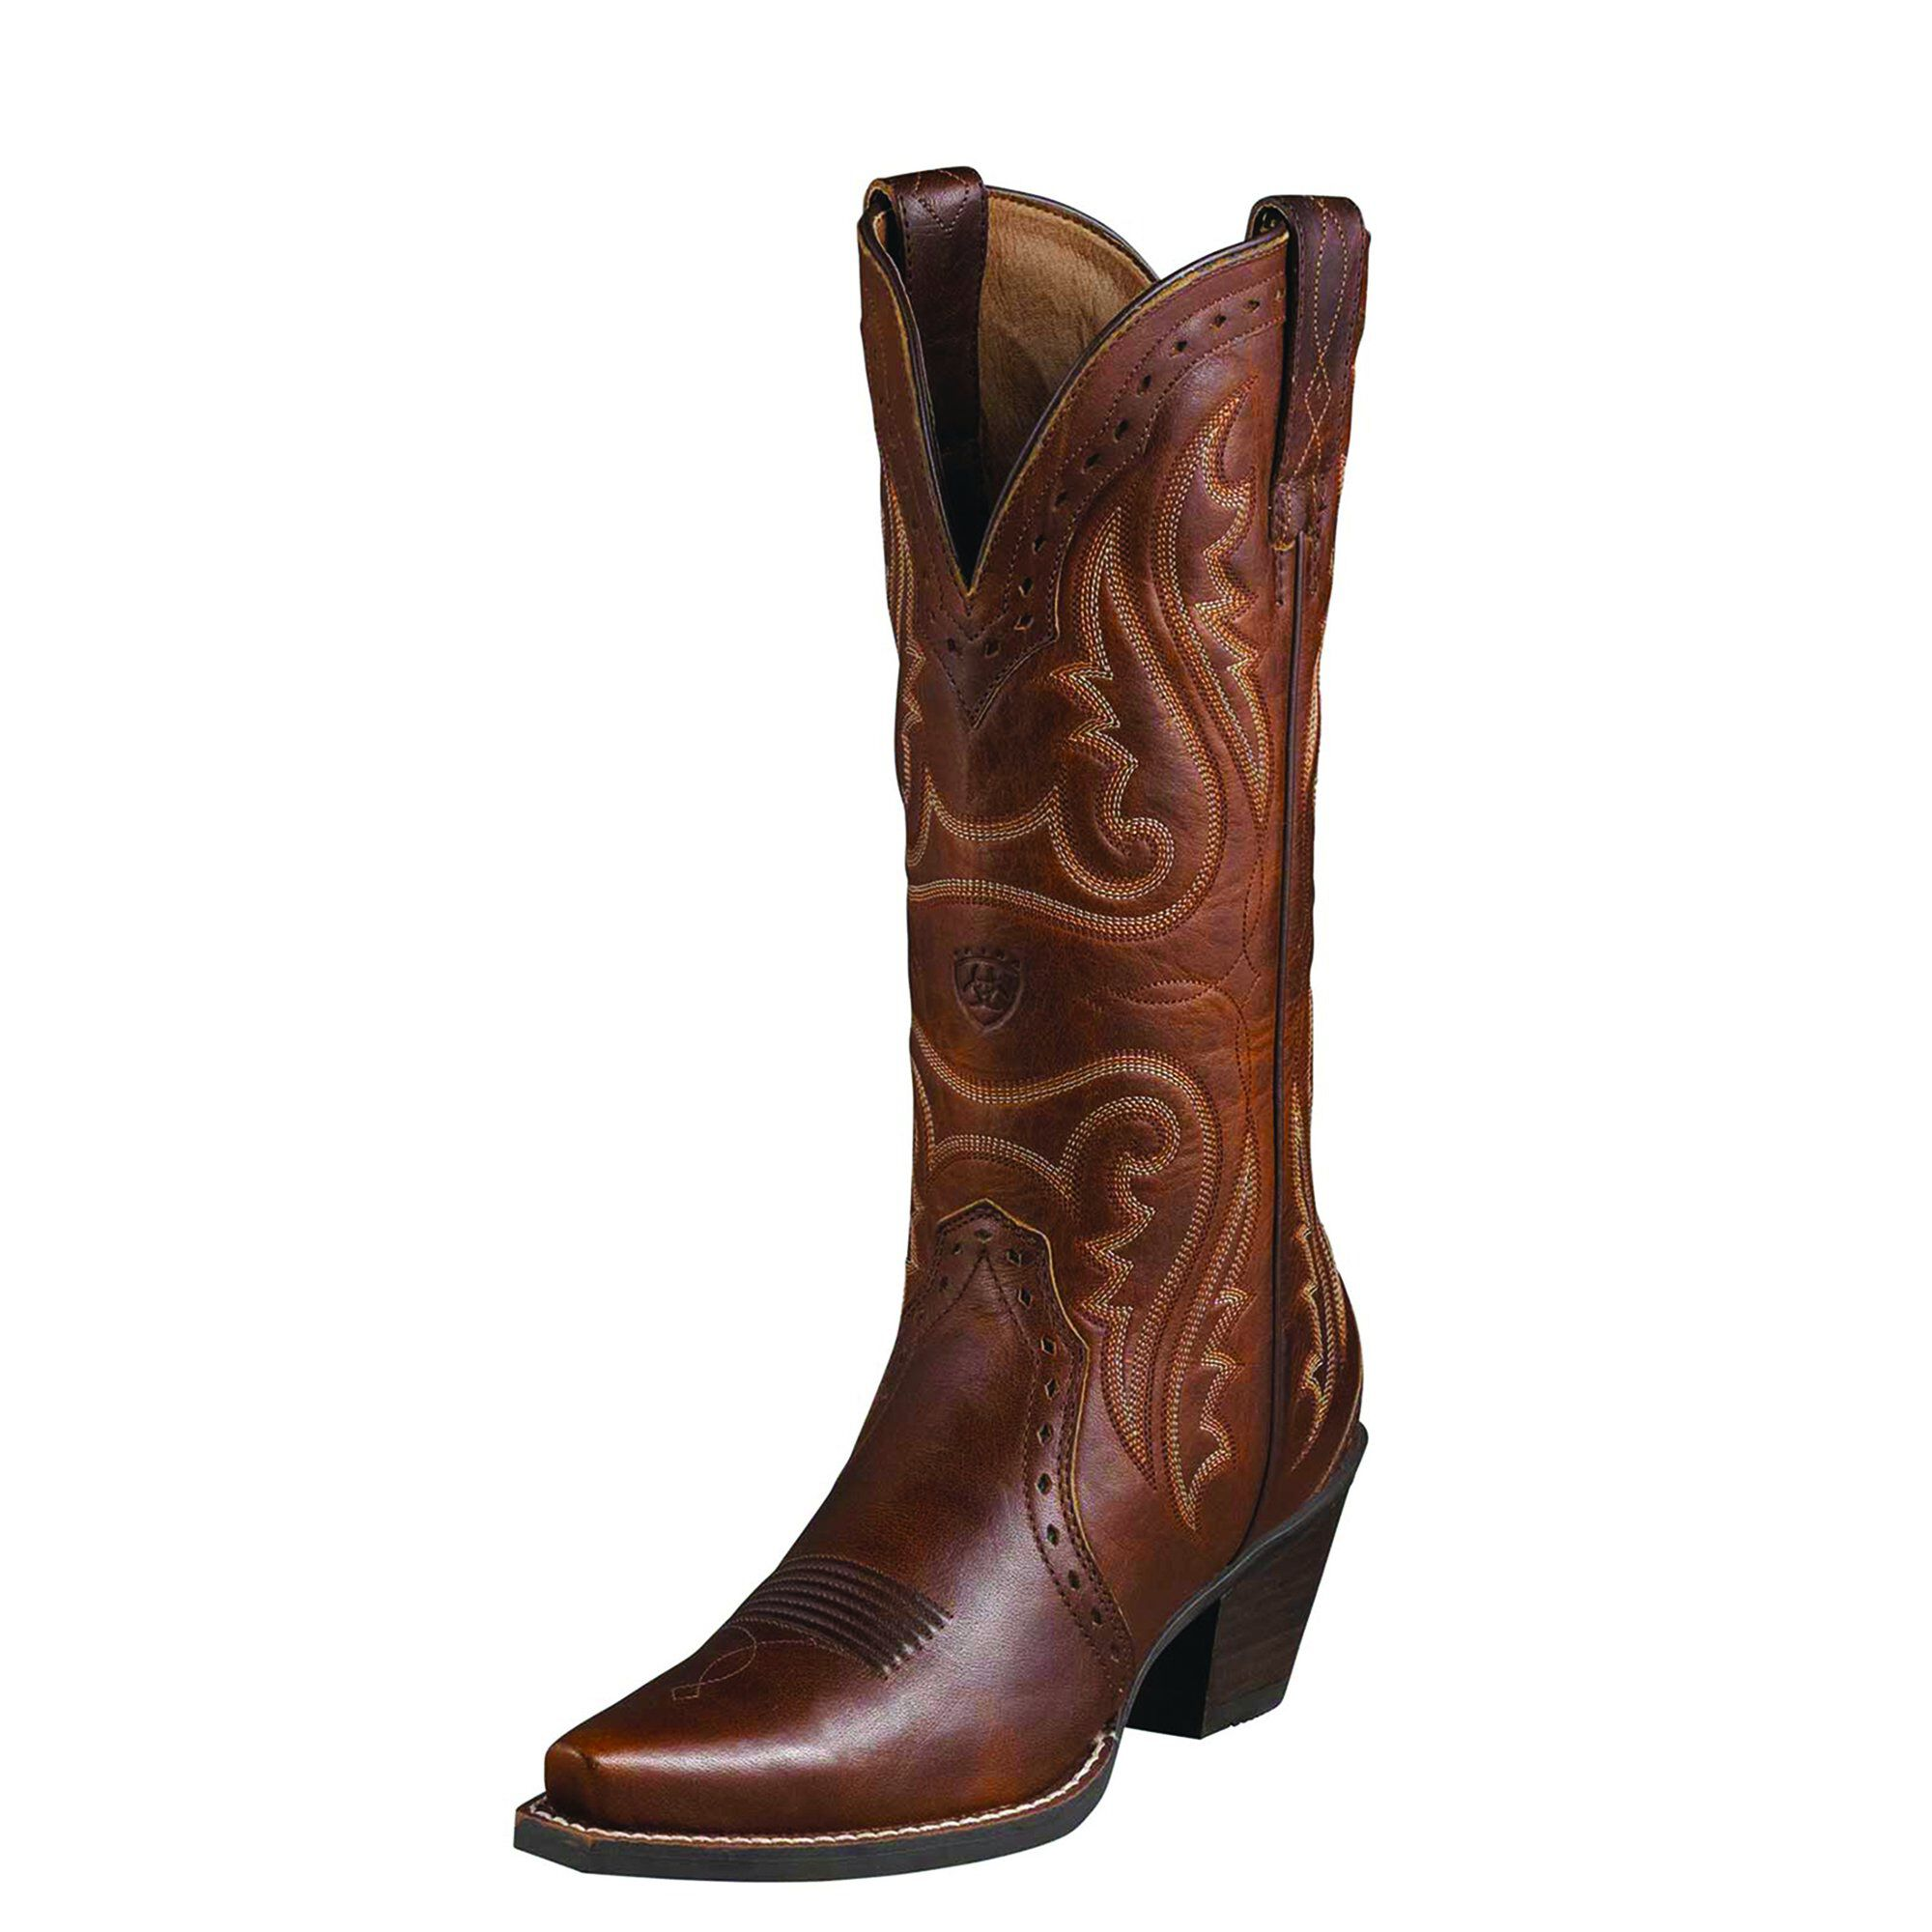 comforter goat comfortable s own pin the pearwood these are i cowboy womens most elam hopkins lucchese boots destroyed classics